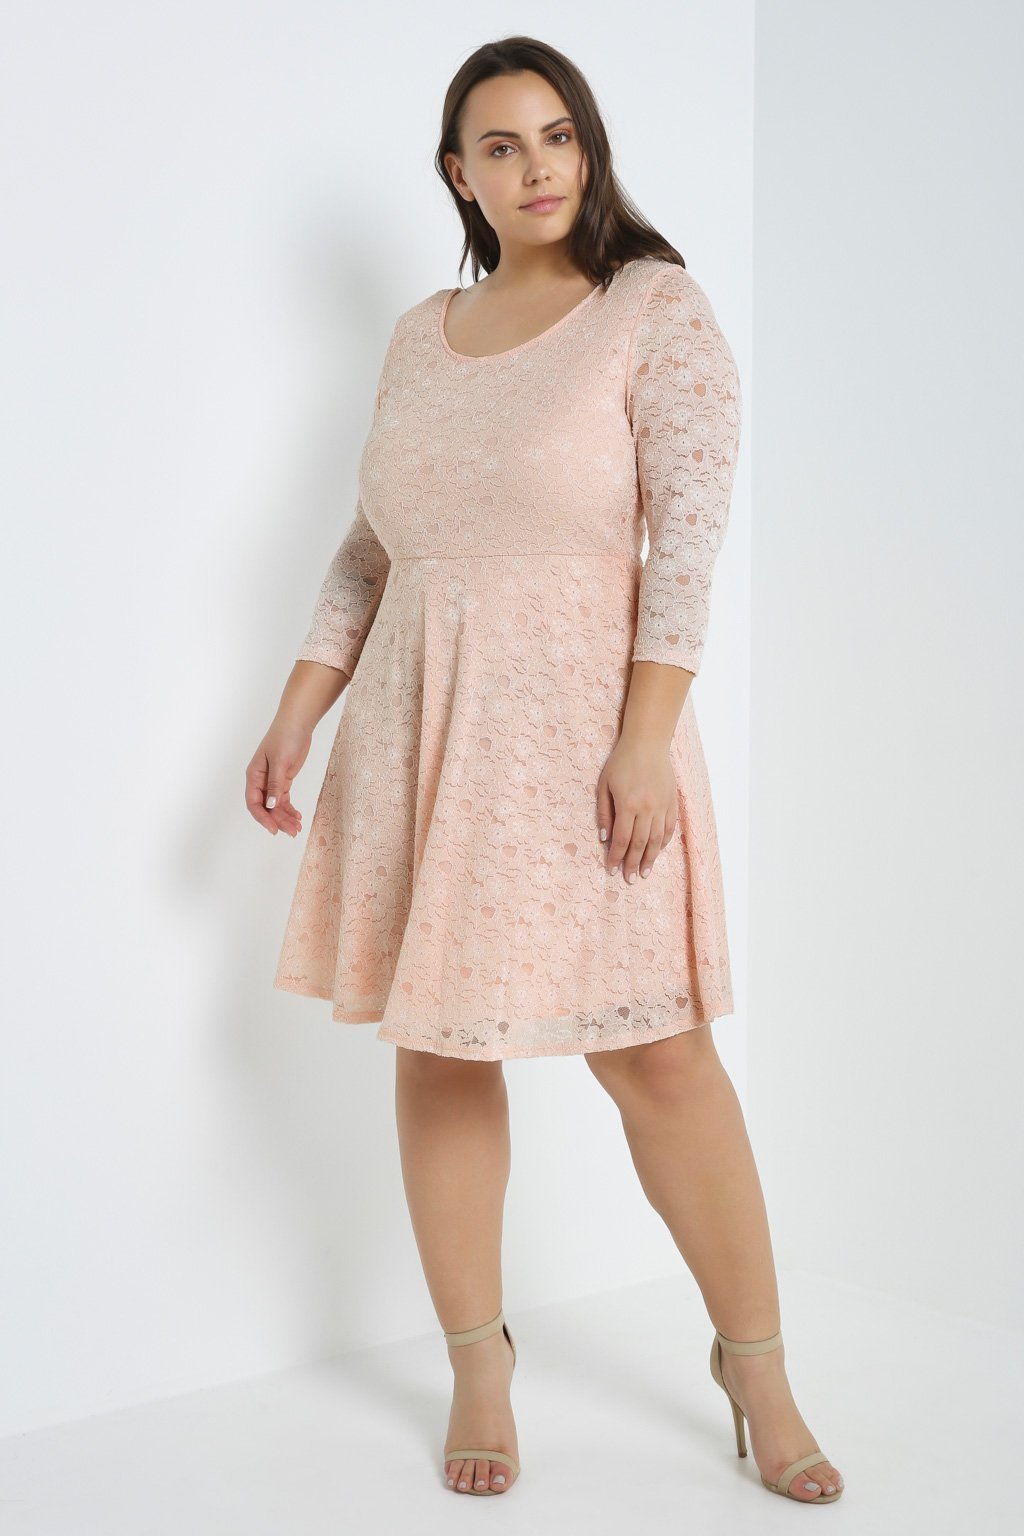 Poshsquare Plus 1XL / Light Pink Love Poem Lace Fit and Flare Dress Plus Size